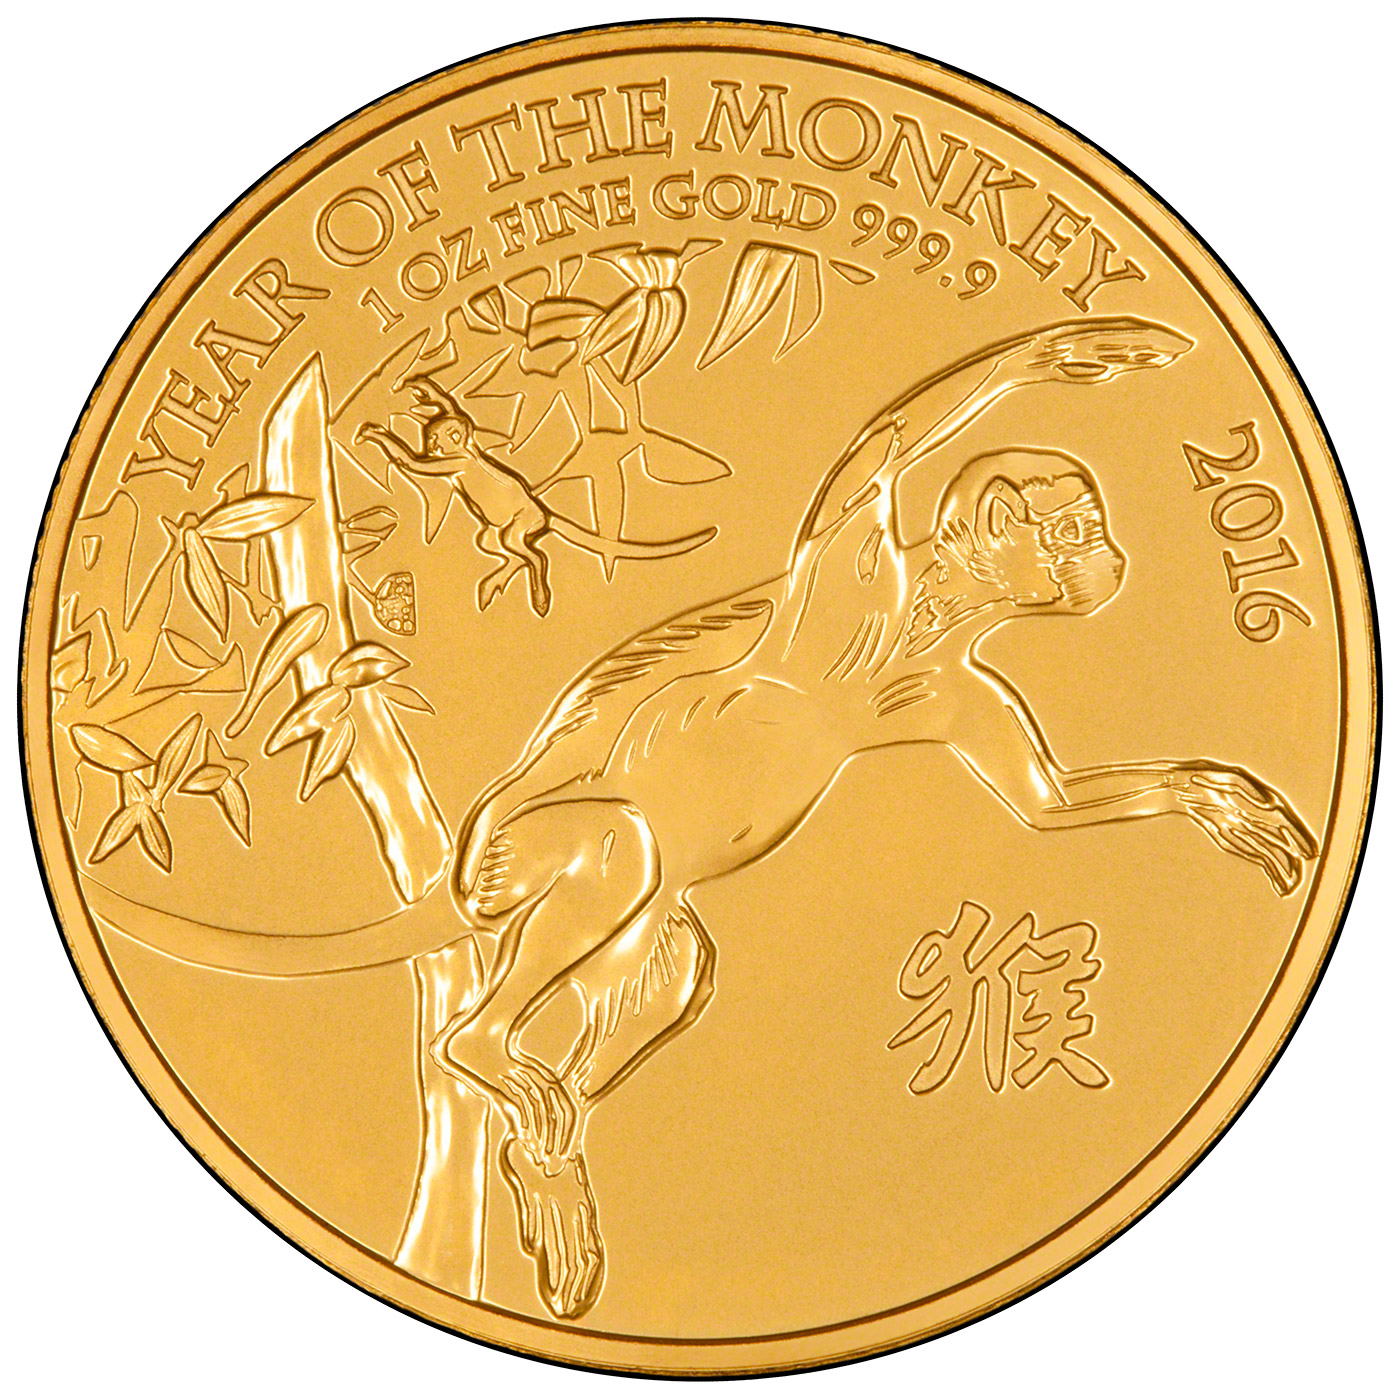 2016 Royal Mint Year of the Monkey